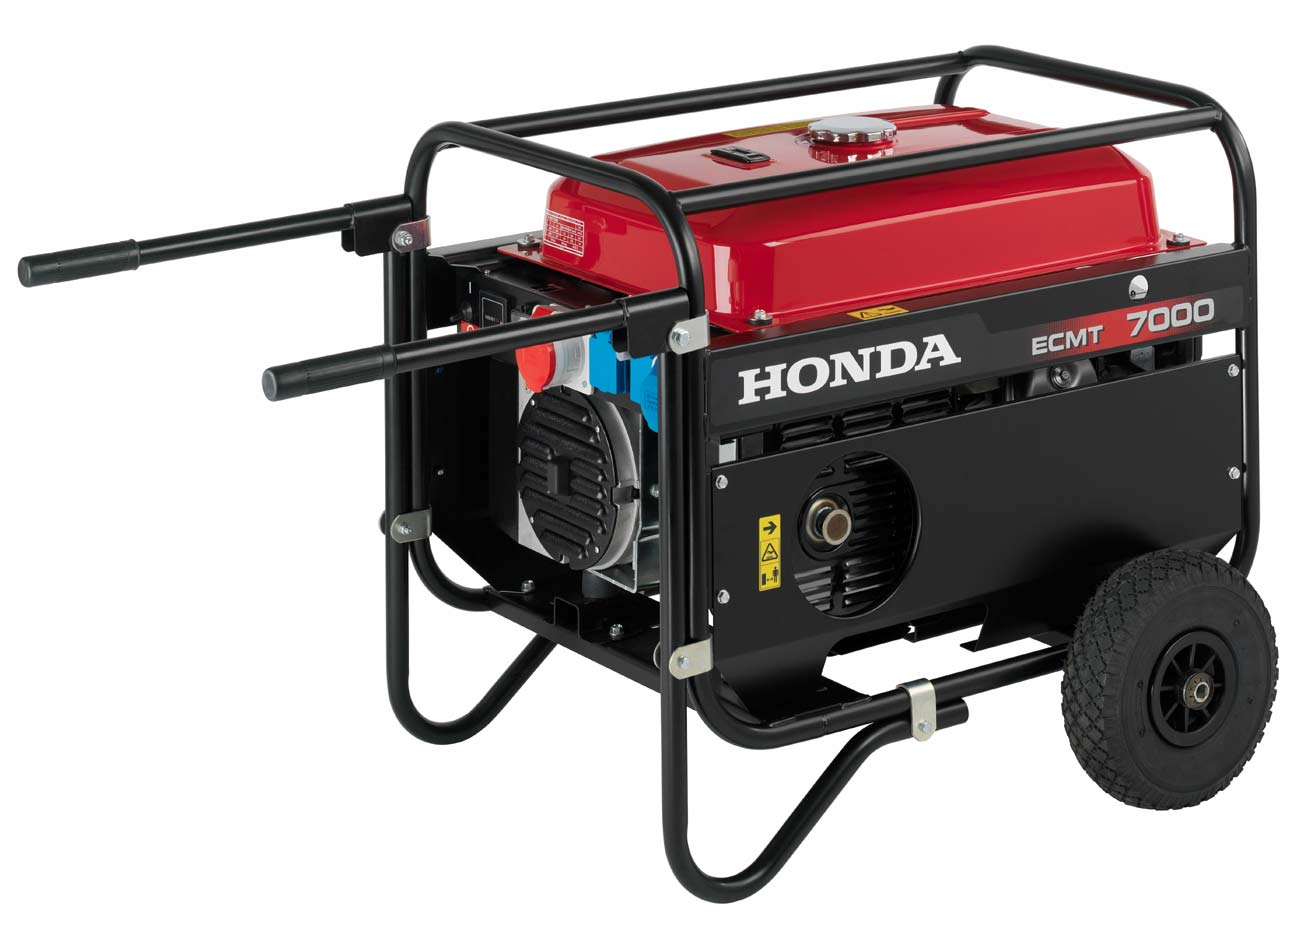 Honda ECMT7000, Generator curent electric